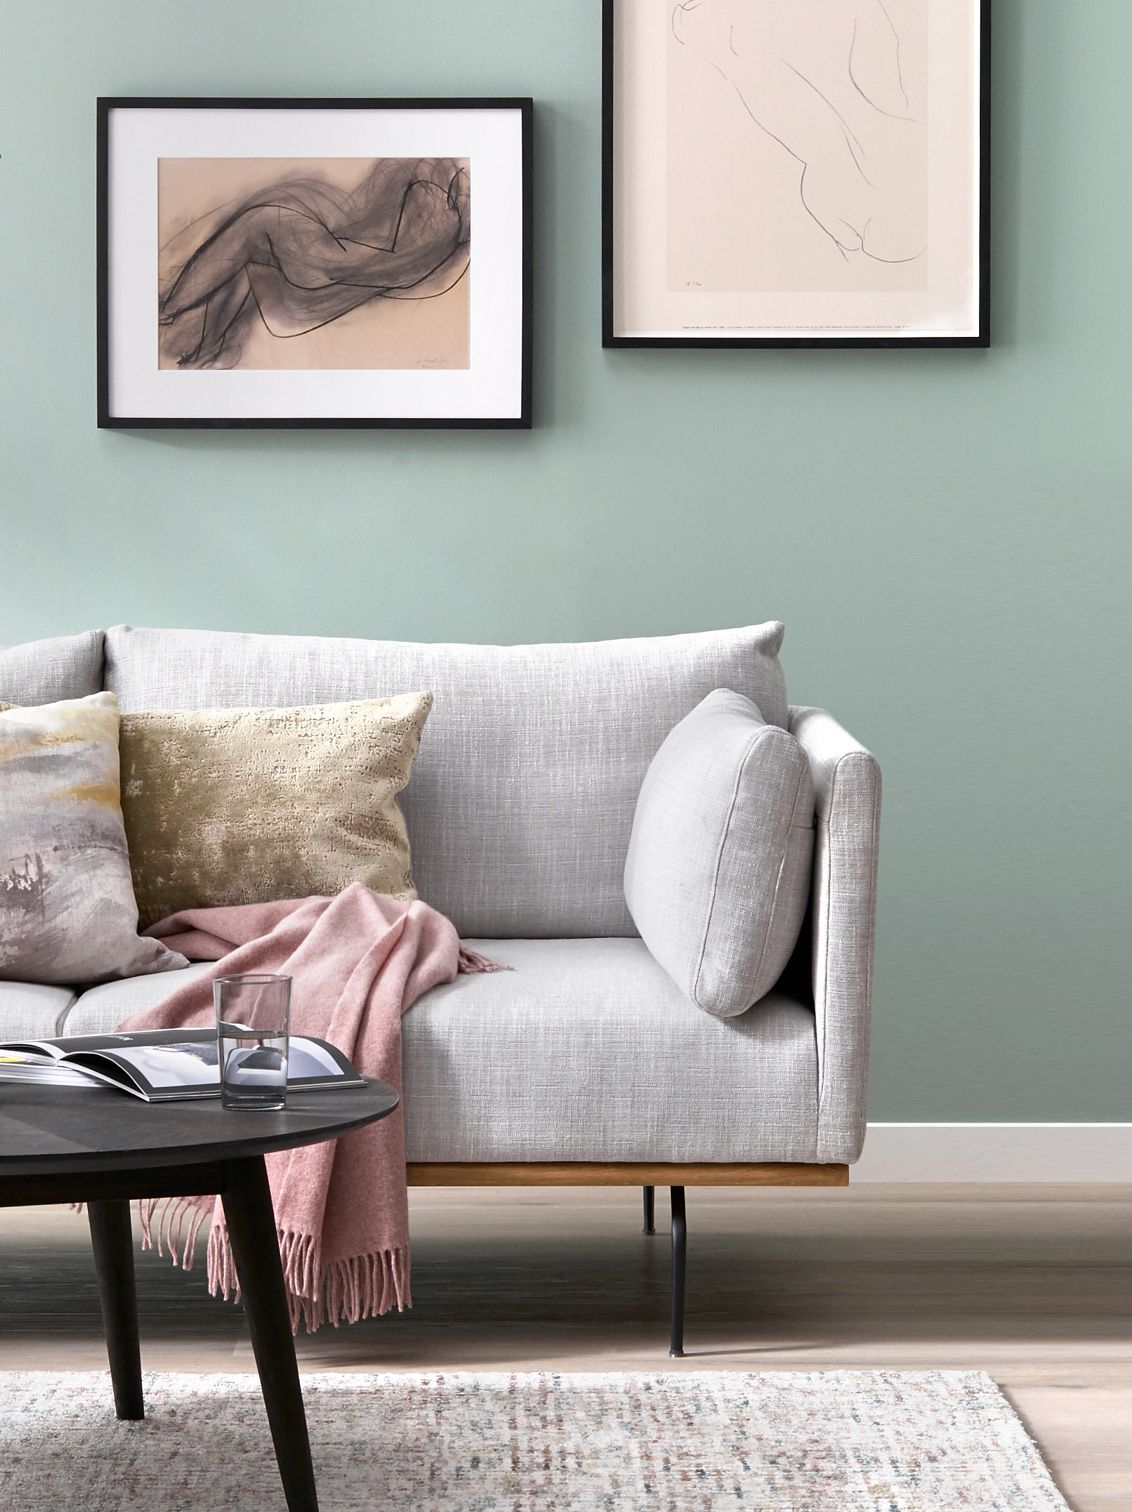 Create a calming space with pastel hues and soft watercolour prints